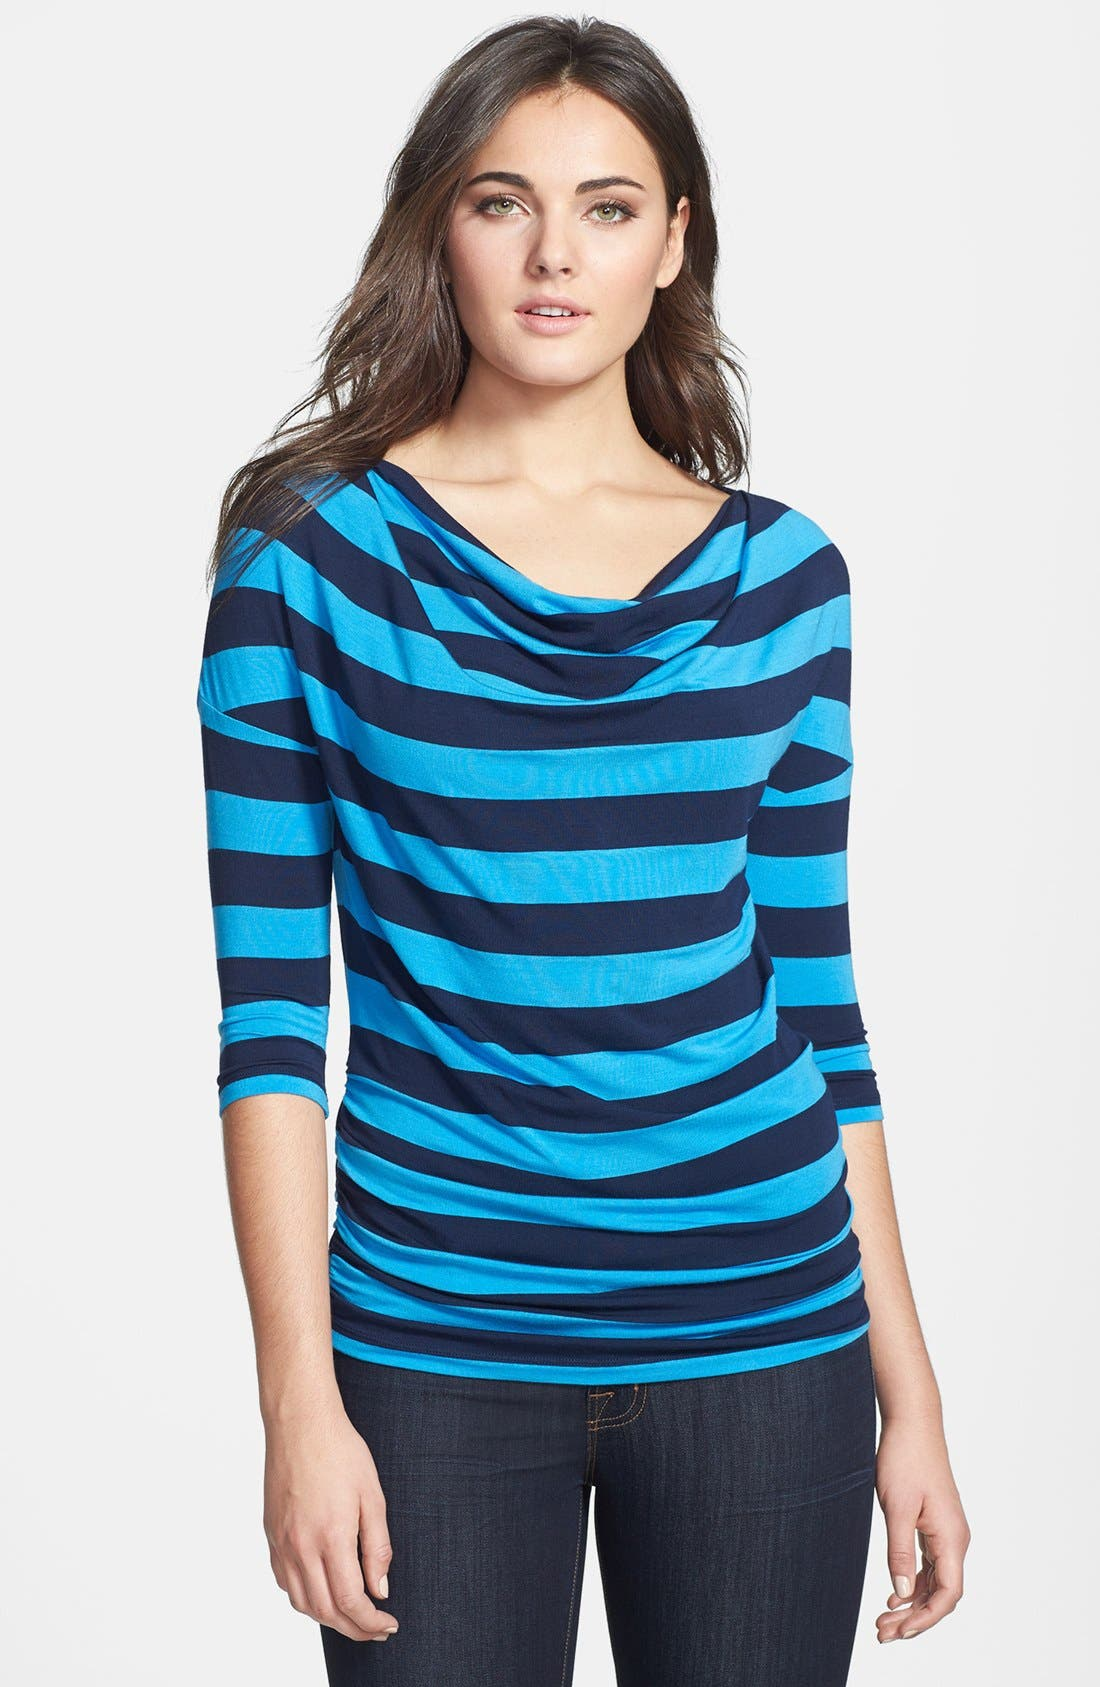 Alternate Image 1 Selected - Caslon® Drape Neck Three Quarter Sleeve Stretch Knit Tee